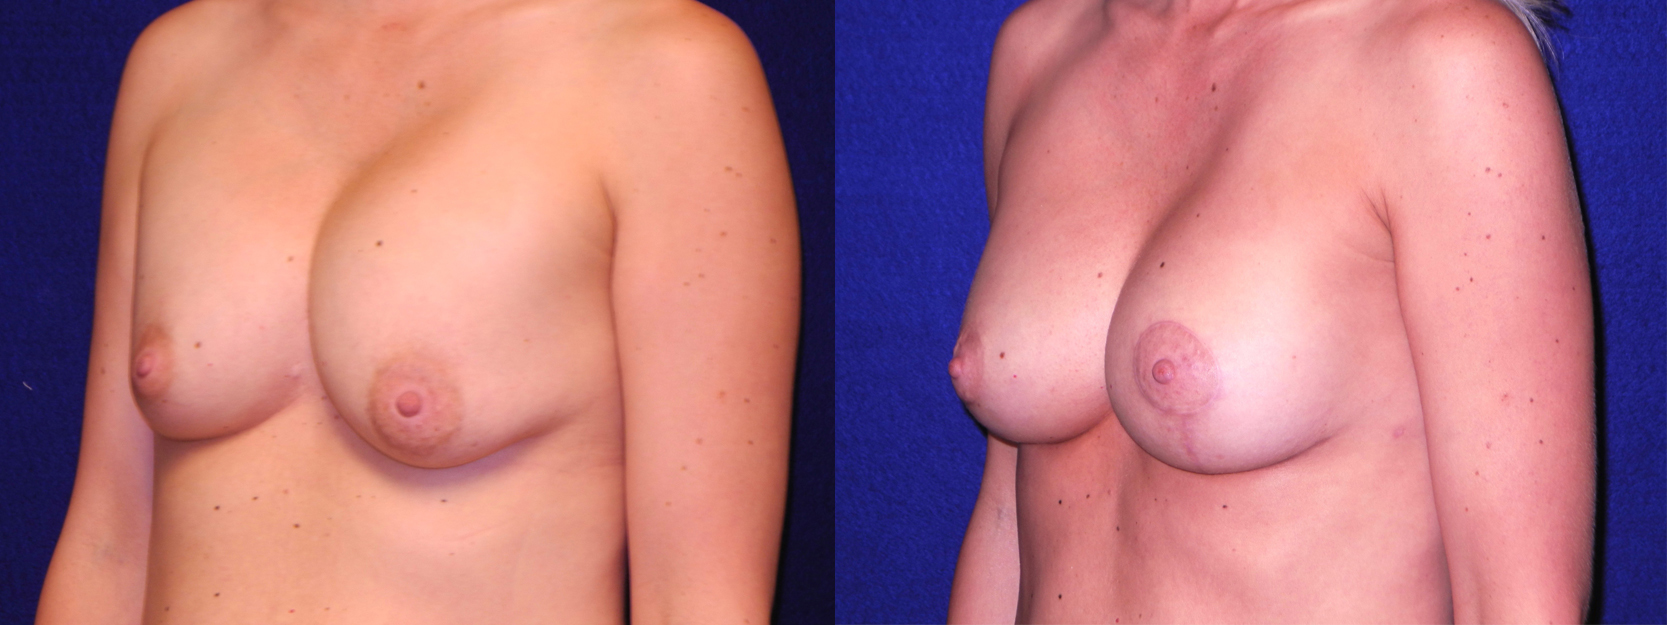 Left 3/4 View - Implant Revision and Breast Lift